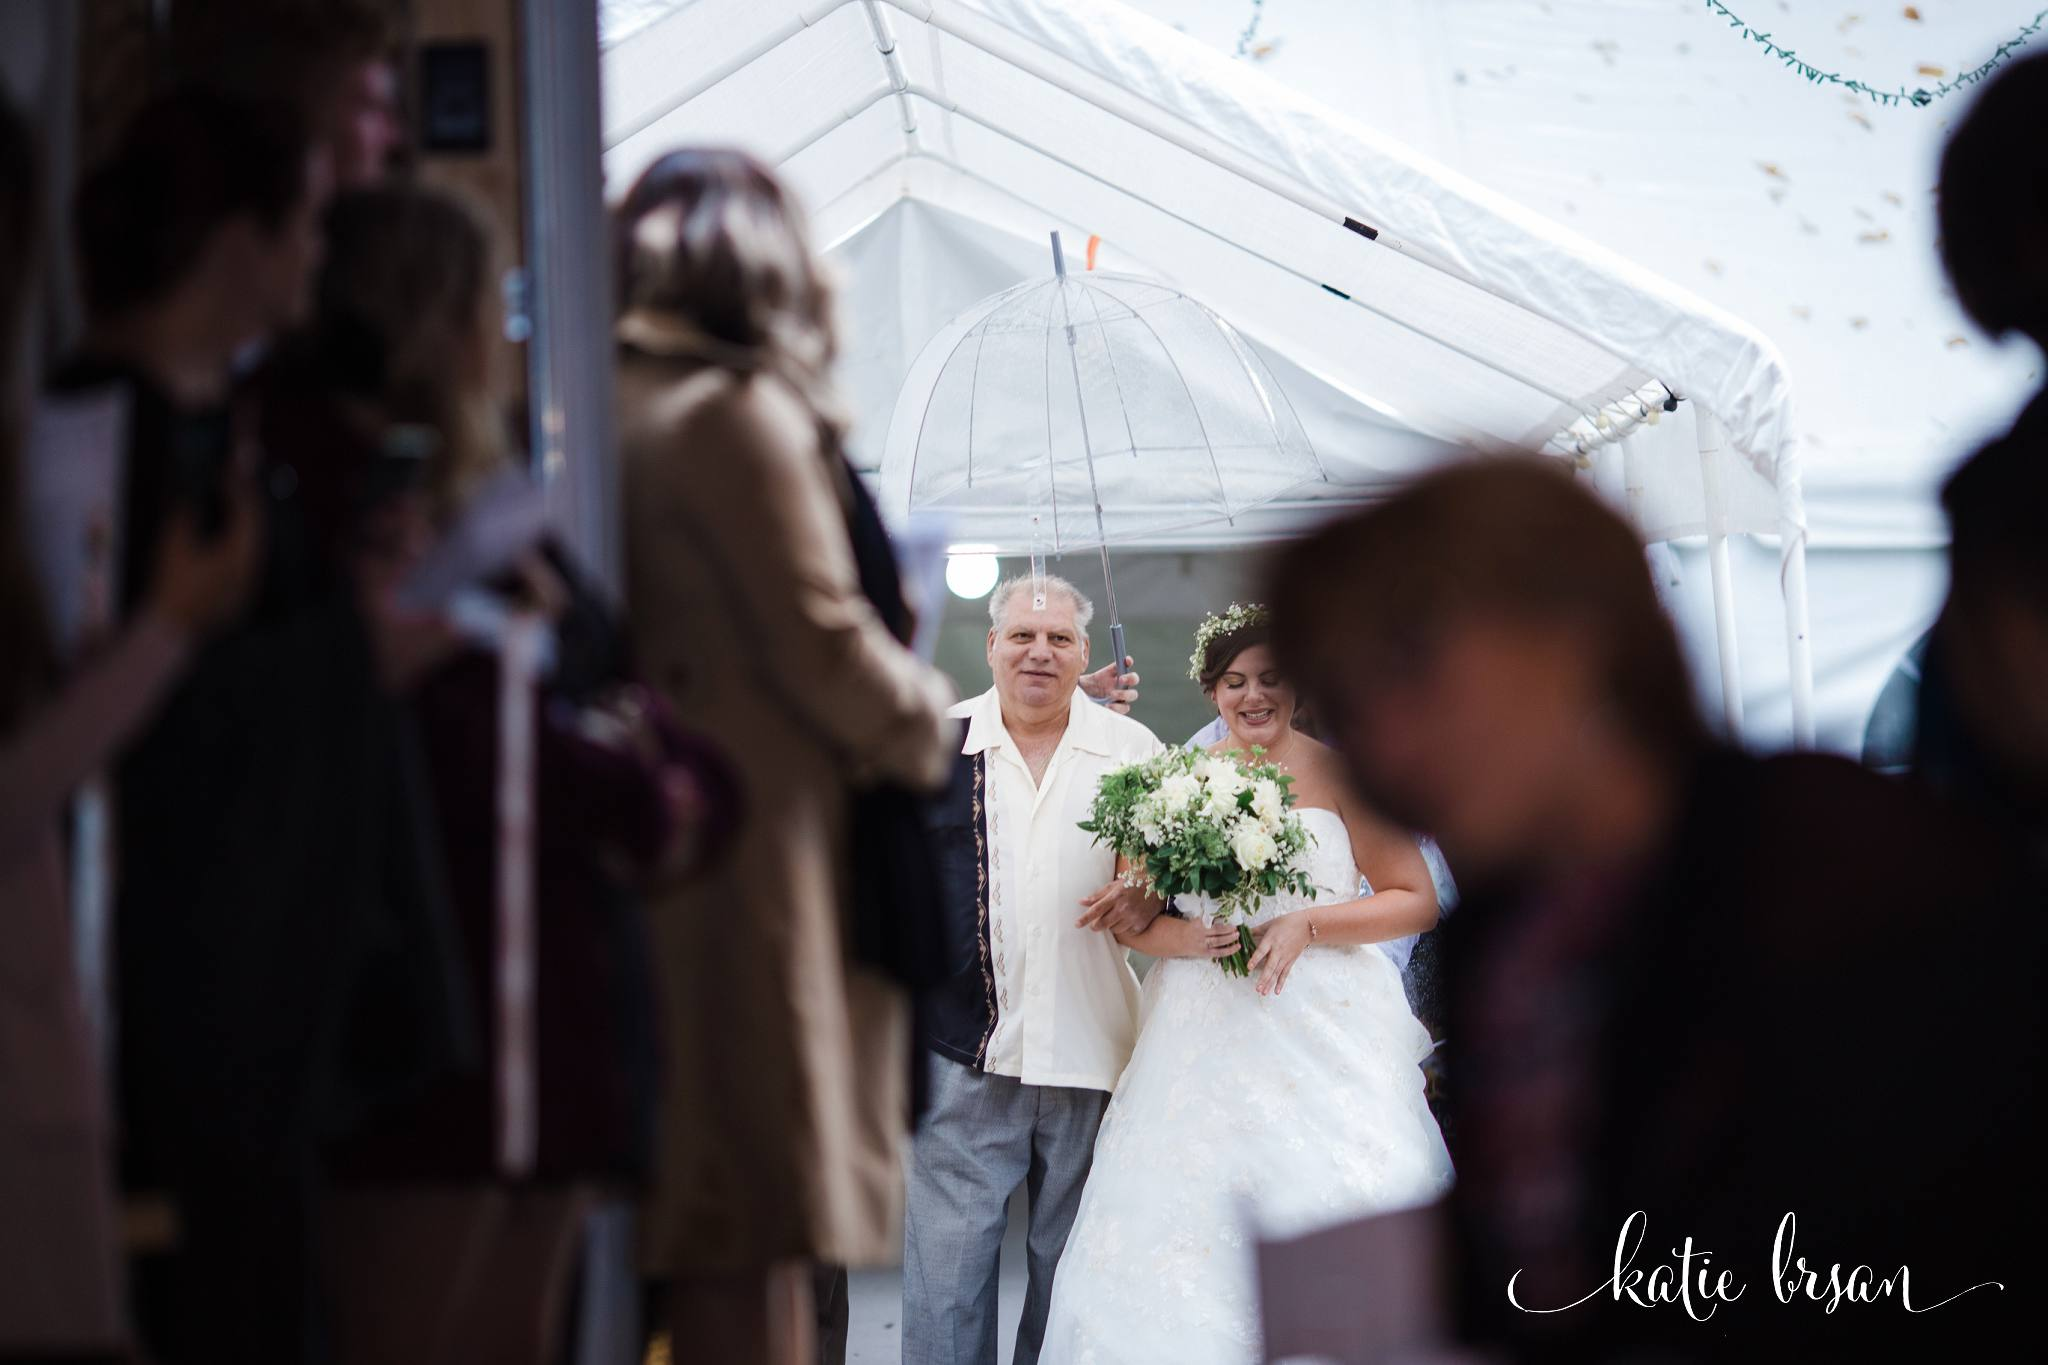 DownersGrove_BackyardWedding_GilbertsPark_1004.jpg